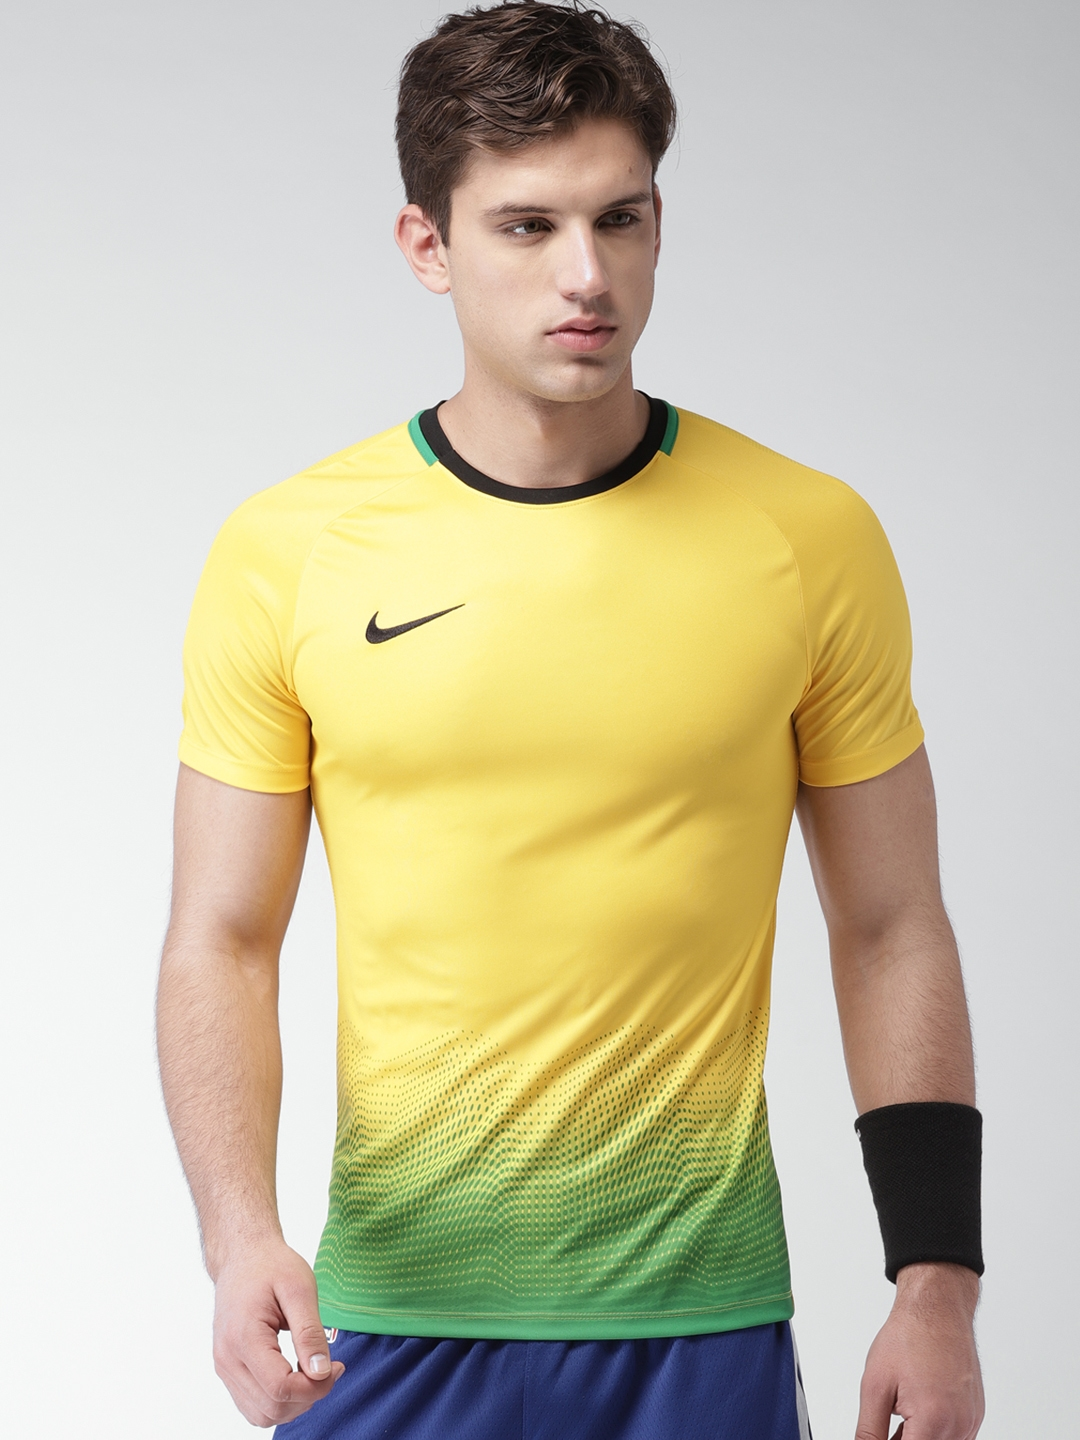 579bcc61bdd4 Buy Nike Yellow Printed Slim Fit Academy Sports Football T Shirt ...